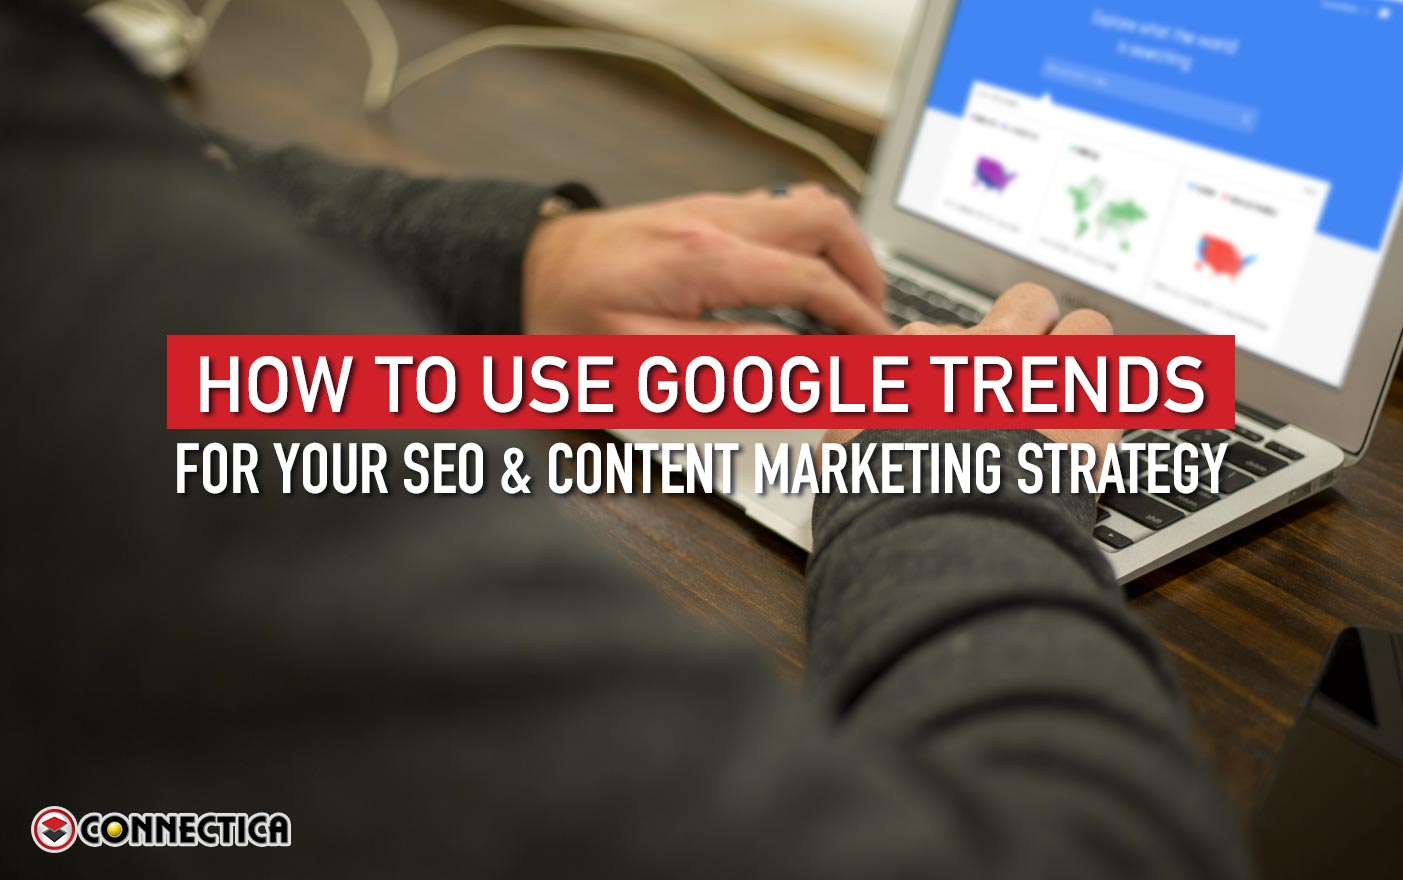 How To Use Google Trends For Your SEO & Content Marketing Strategy